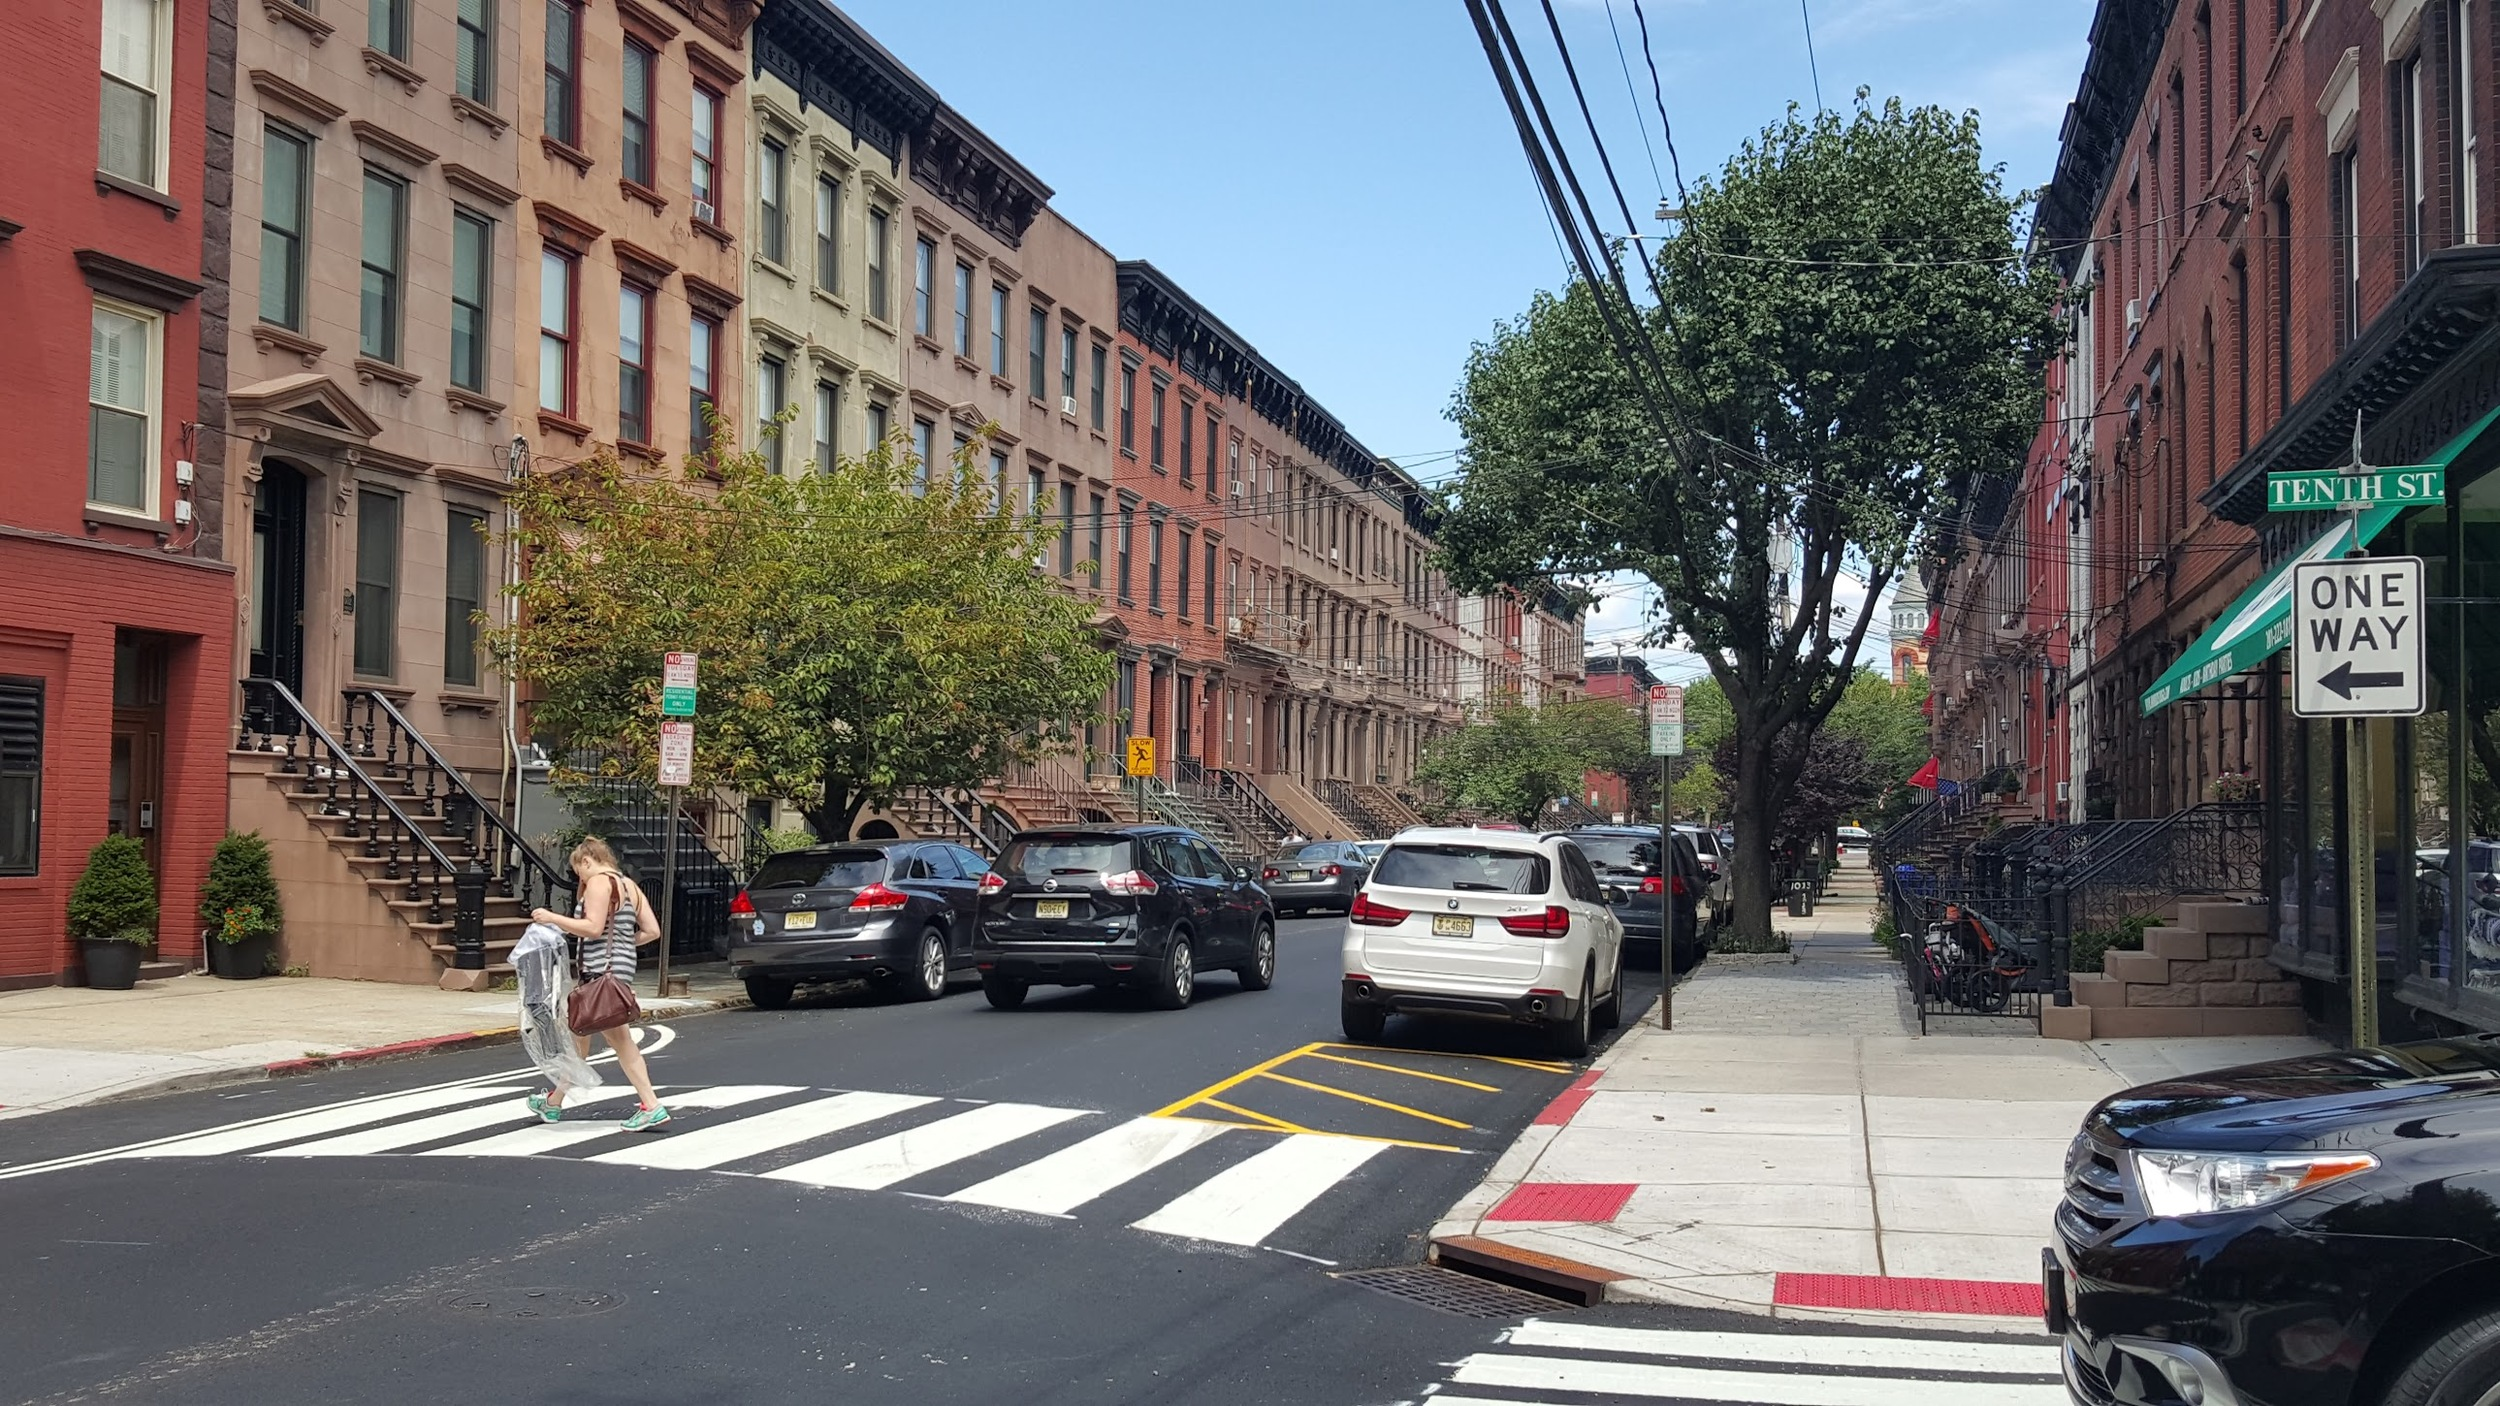 On-street parking spaces in Hoboken. Rent your own for $15/year! Apartment not included.